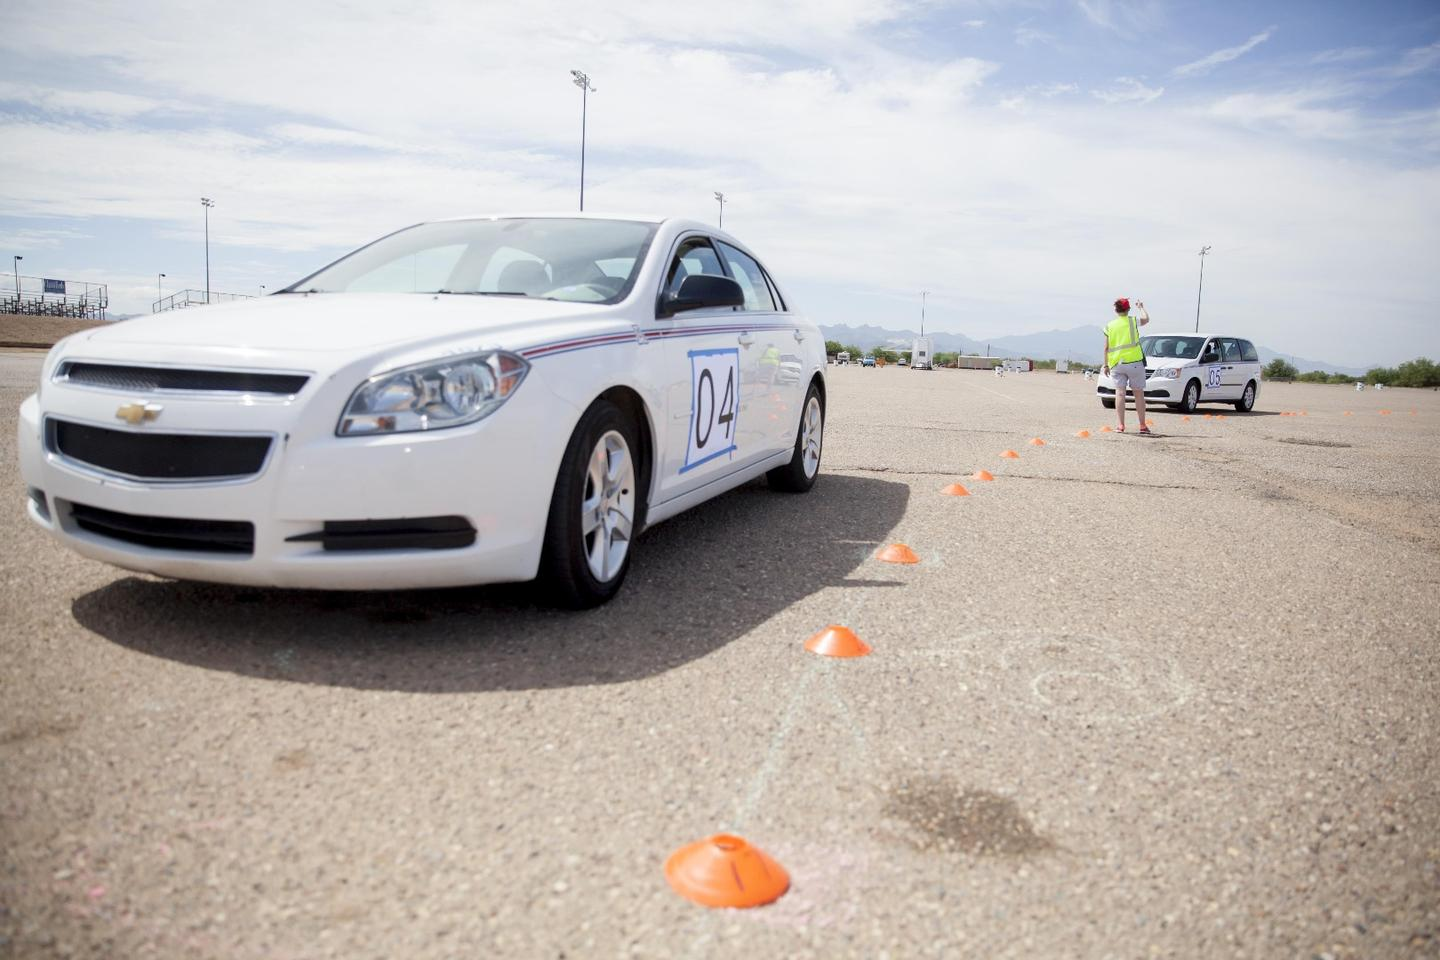 The self-drive car was tested with 20 human-driven cars on a circular track